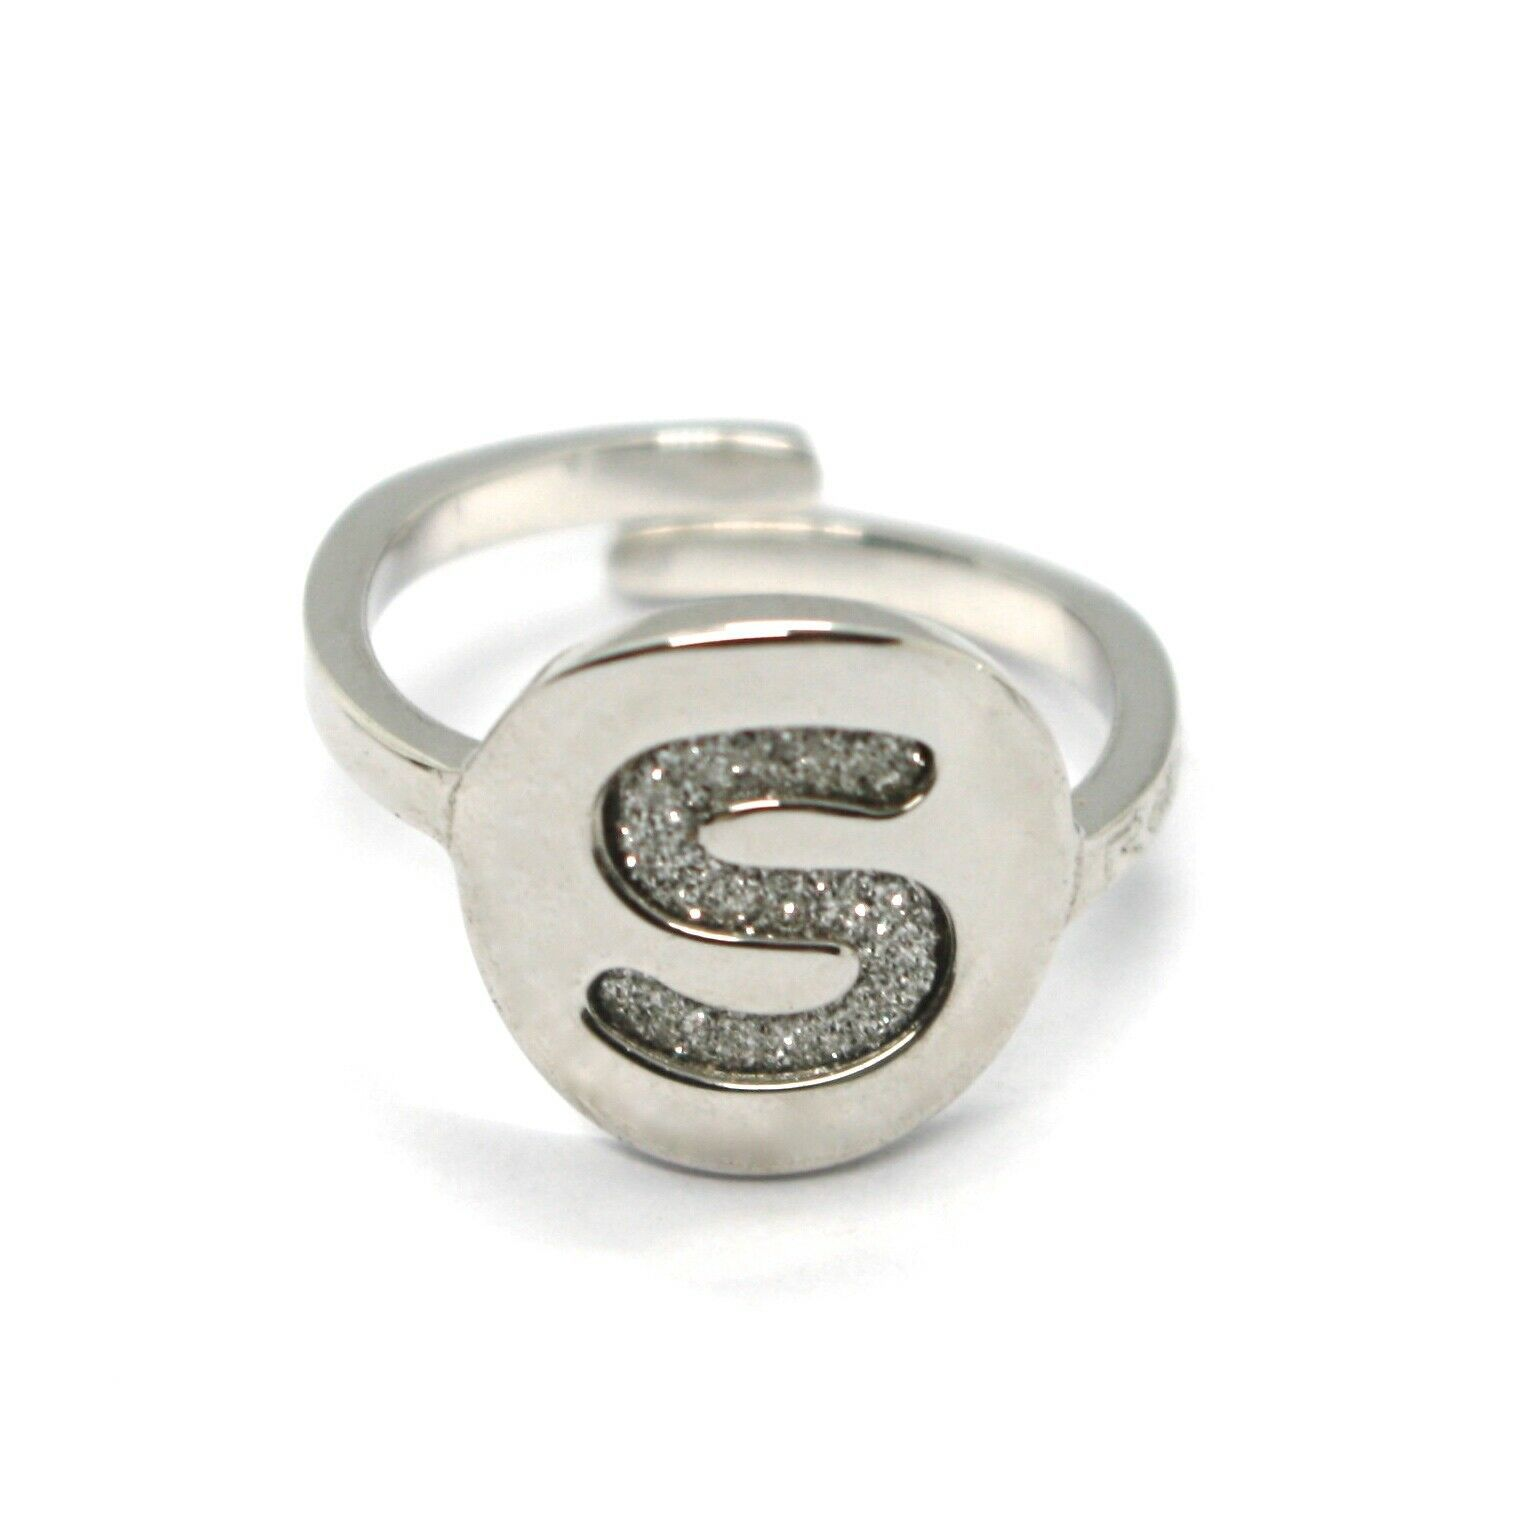 REBECCA BRONZE RING, LETTER S, INITIAL WITH GLITTER, MADE IN ITALY, ADJUSTABLE